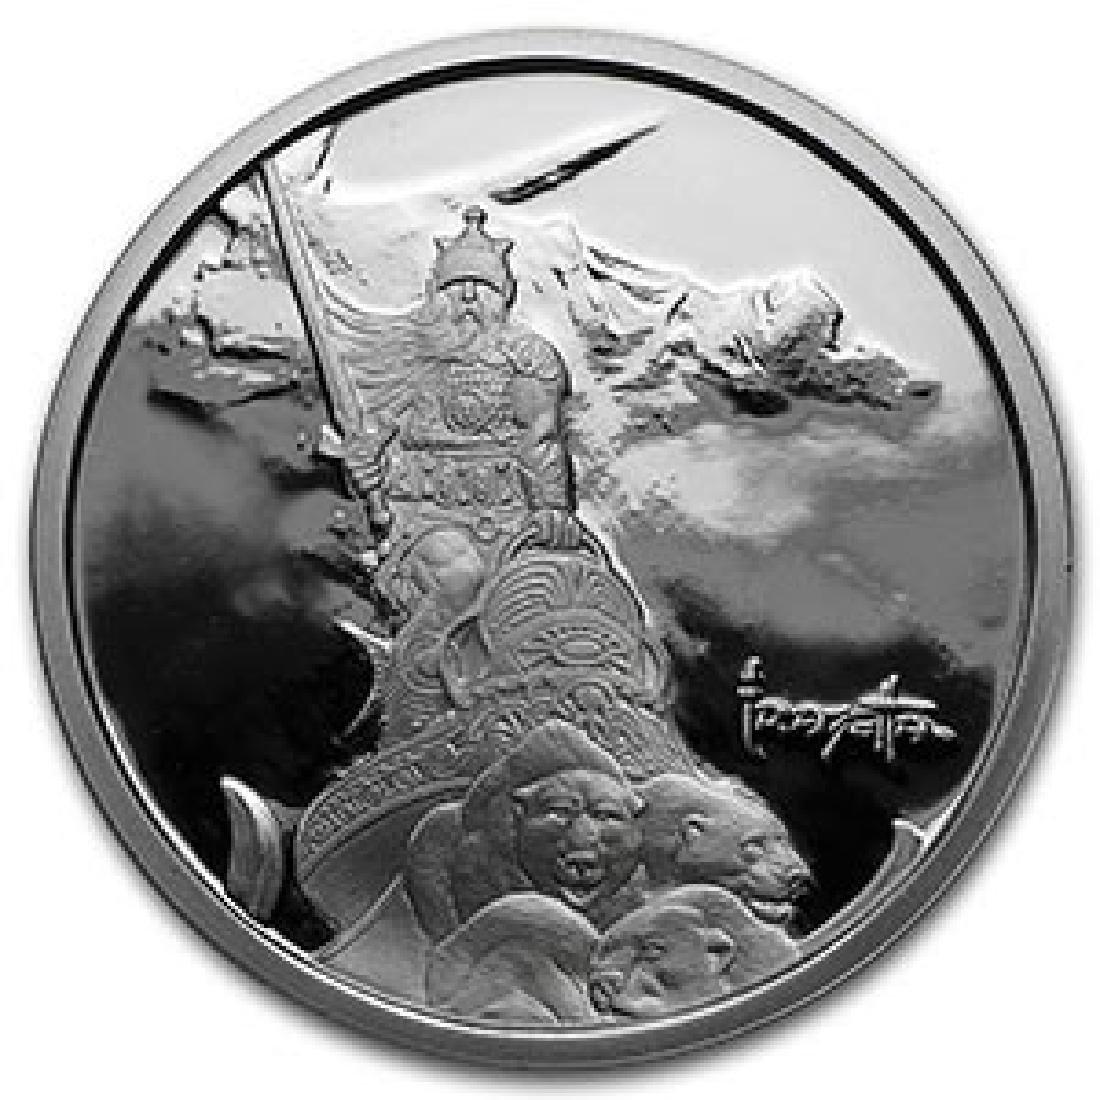 1 oz Silver Proof Round - Frank Frazetta (Silver Warrio